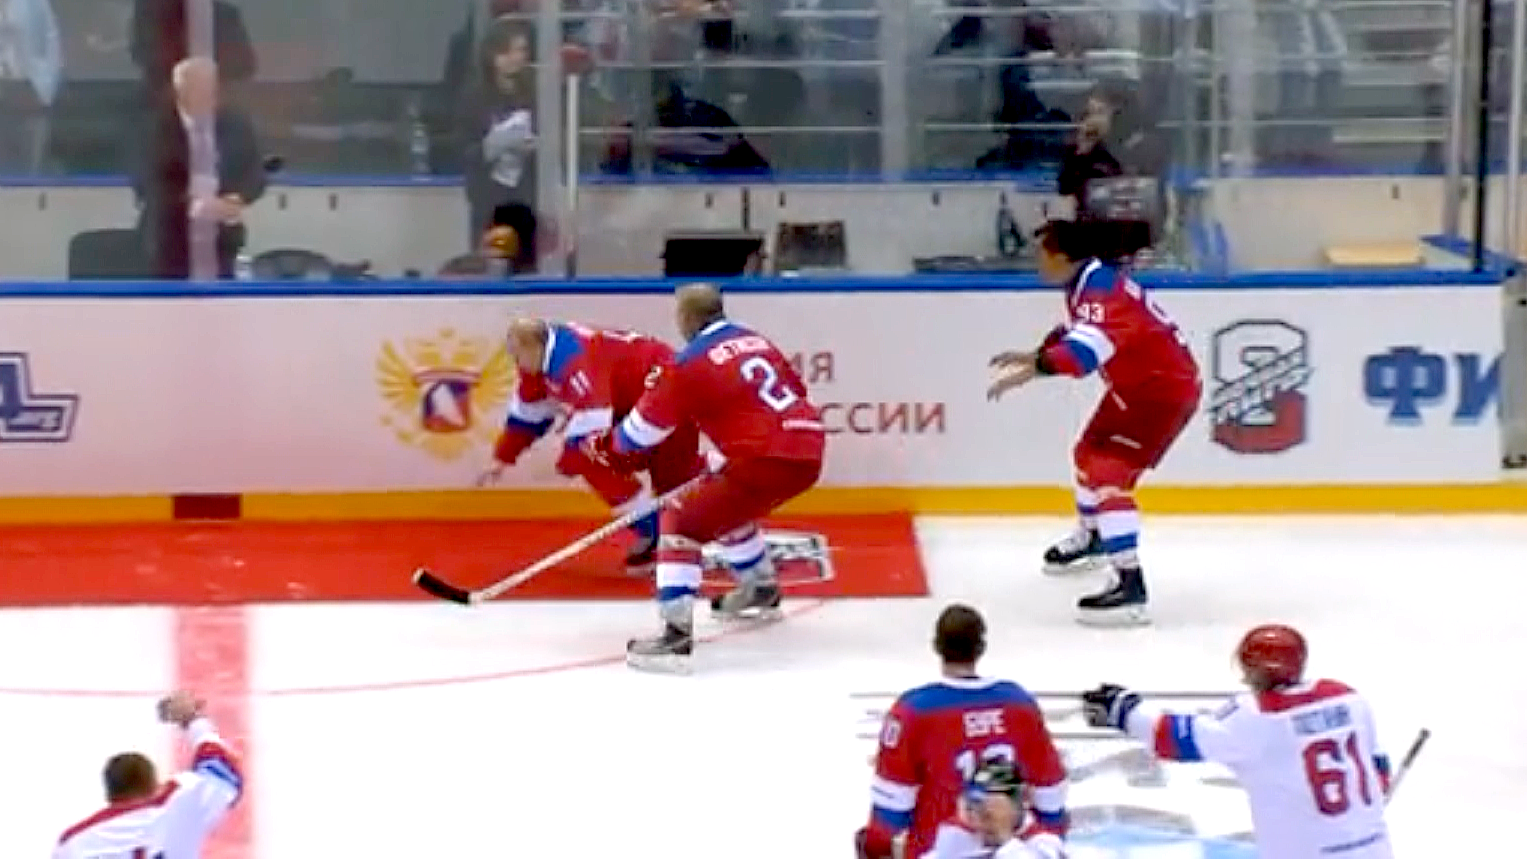 He Shoots He Falls Putin Tumbles On Ice During Hockey Victory Lap Ctv News